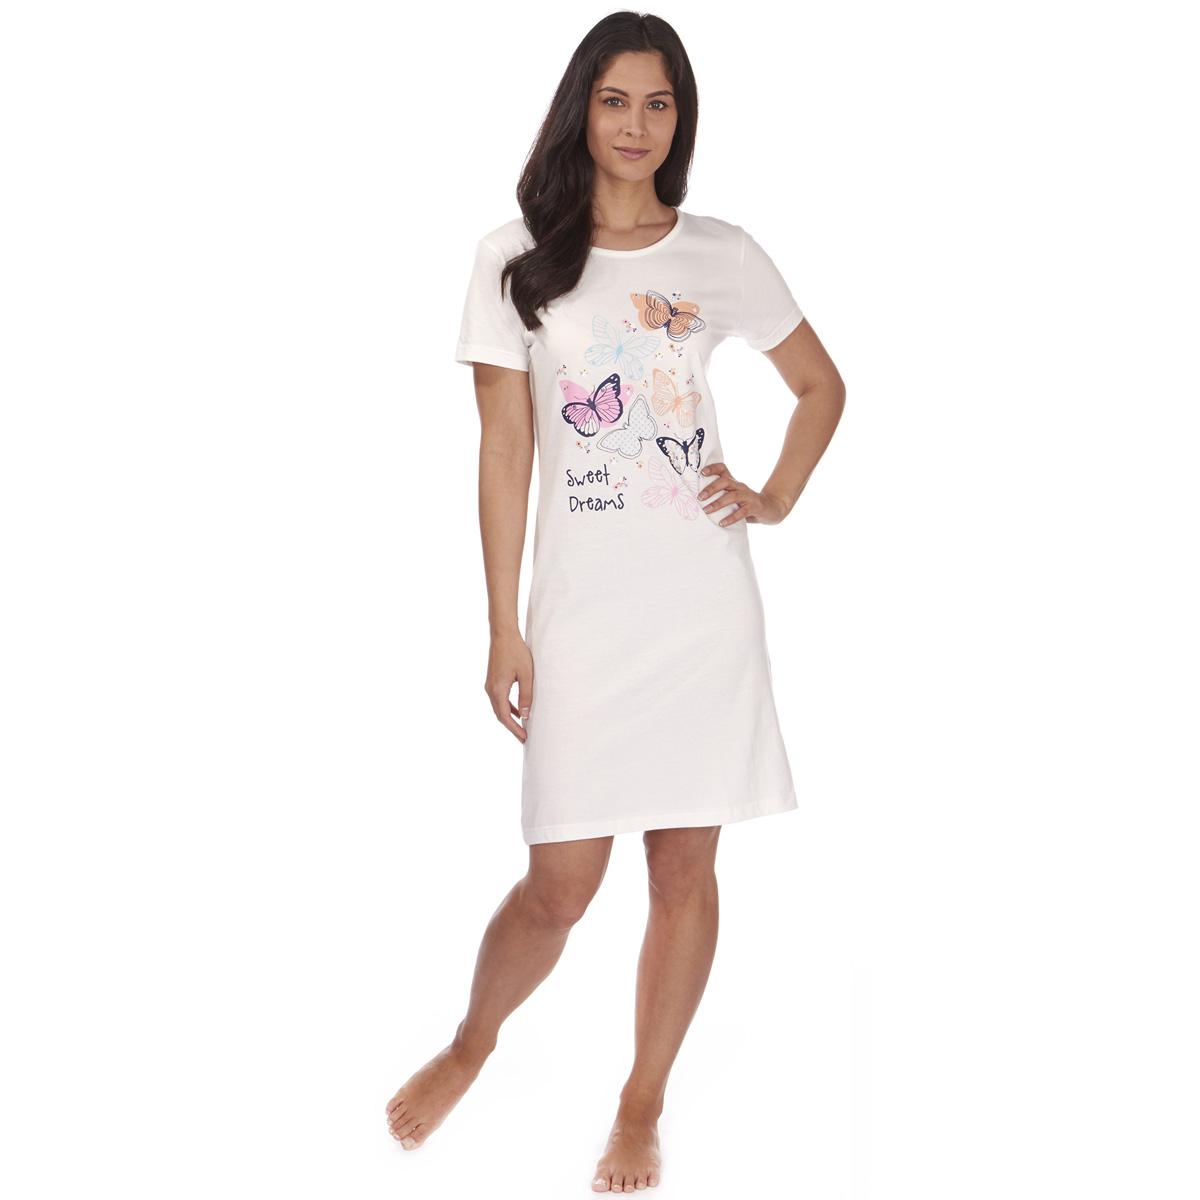 This night wear dress for ladies is a one-piece long nightwear for women looks sexy as well as comfortable being on your own. Young girls with a shaped body look cute in such night wears. The most appealing part of one piece night wear is that the above knee length lets your legs open and bring out all girly feelings in your room.